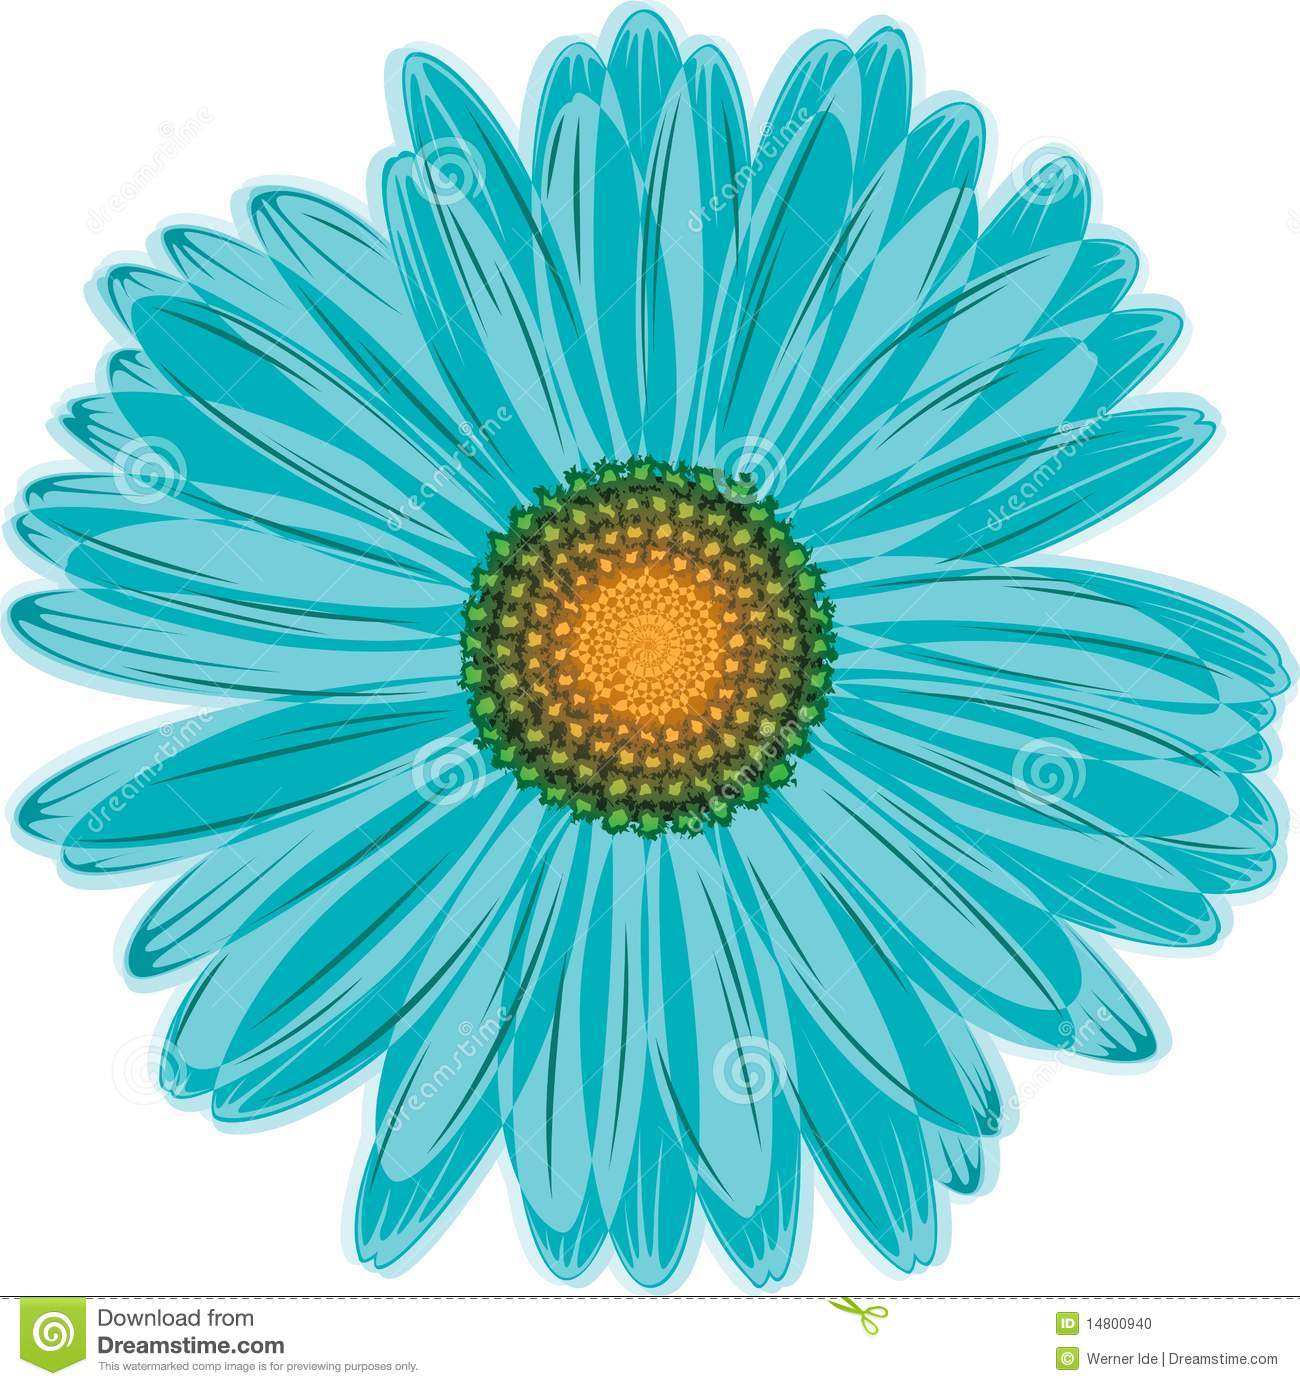 Aqua blue daisy flower stock vector illustration of daisy 14800940 aqua blue daisy flower izmirmasajfo